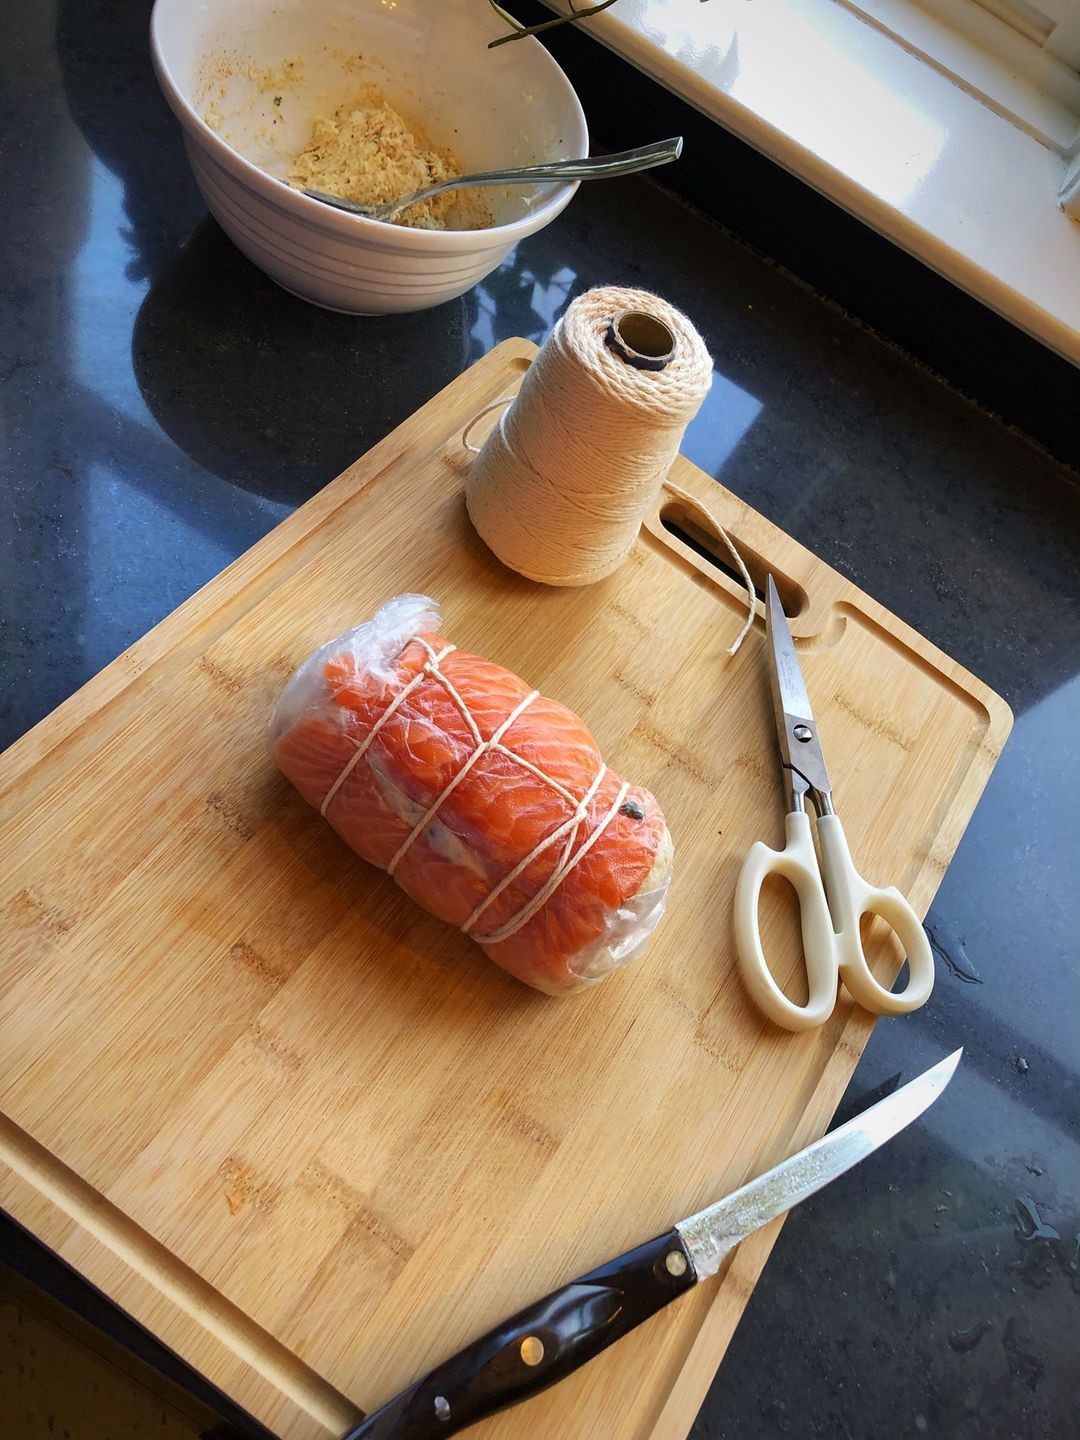 A trussed and wrapped salmon roll sits on a cutting board alongside some kitchen shears and butcher's twine